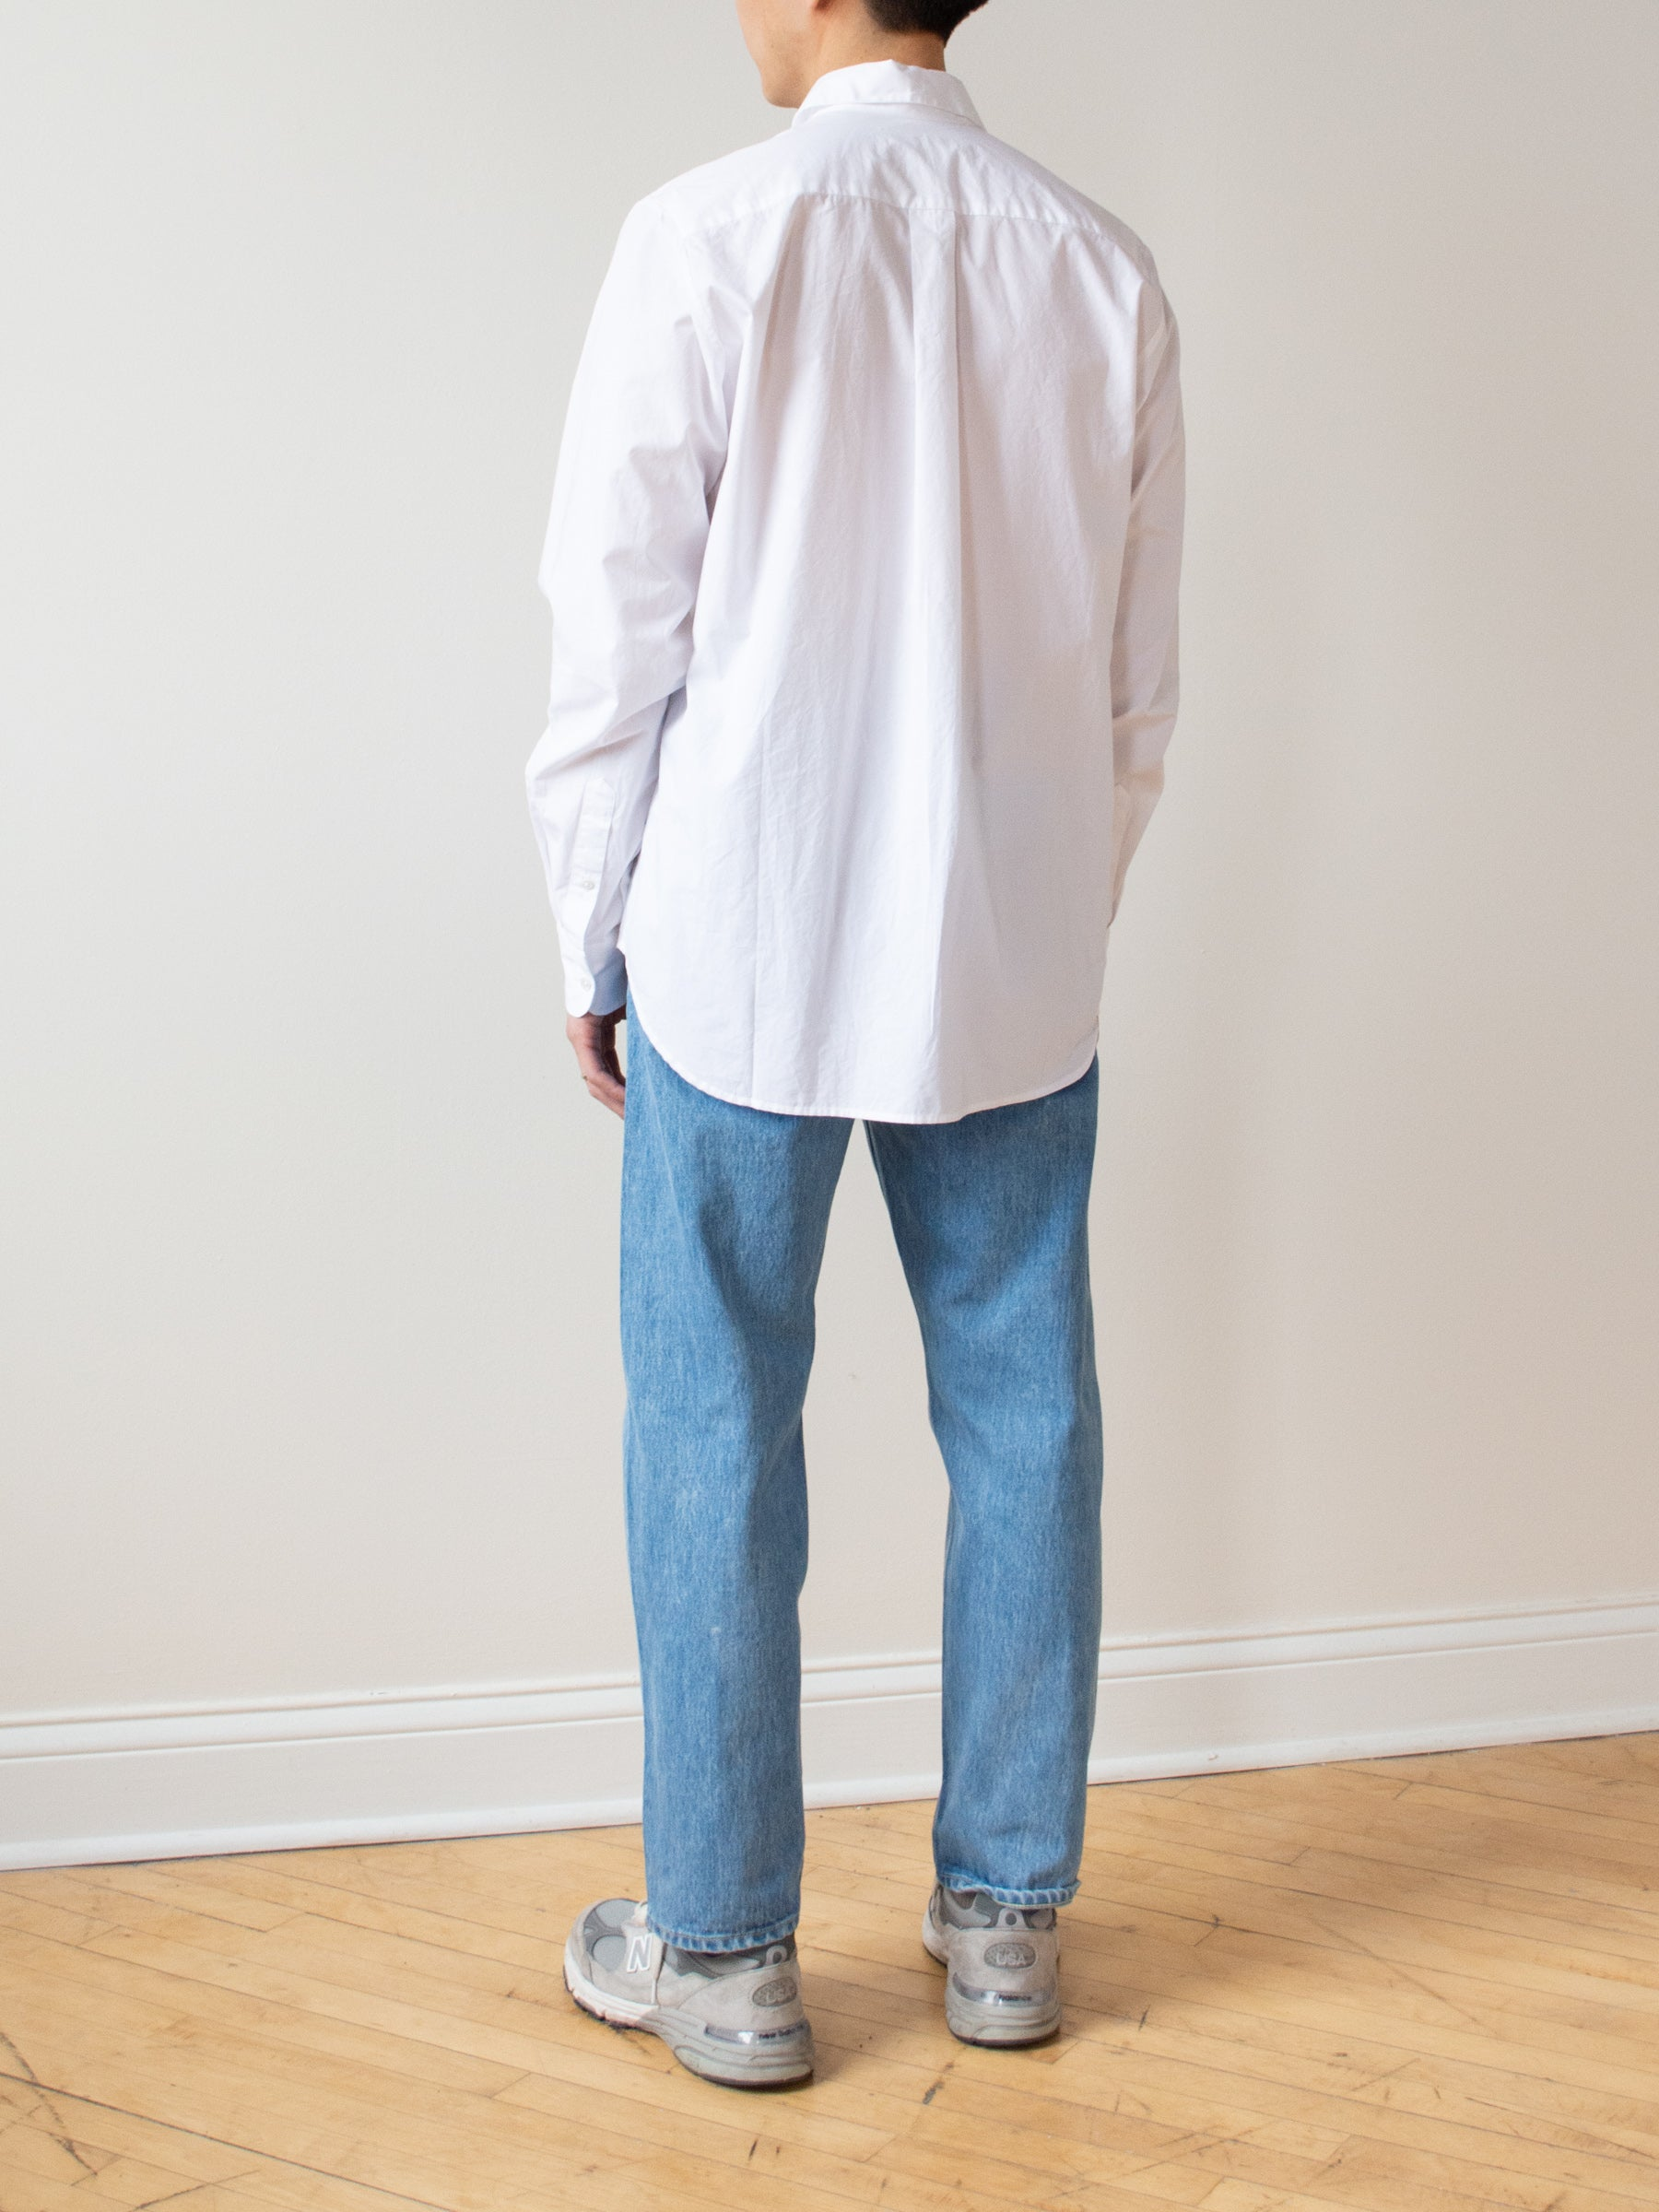 Chris Shirt - White Cotton Poplin